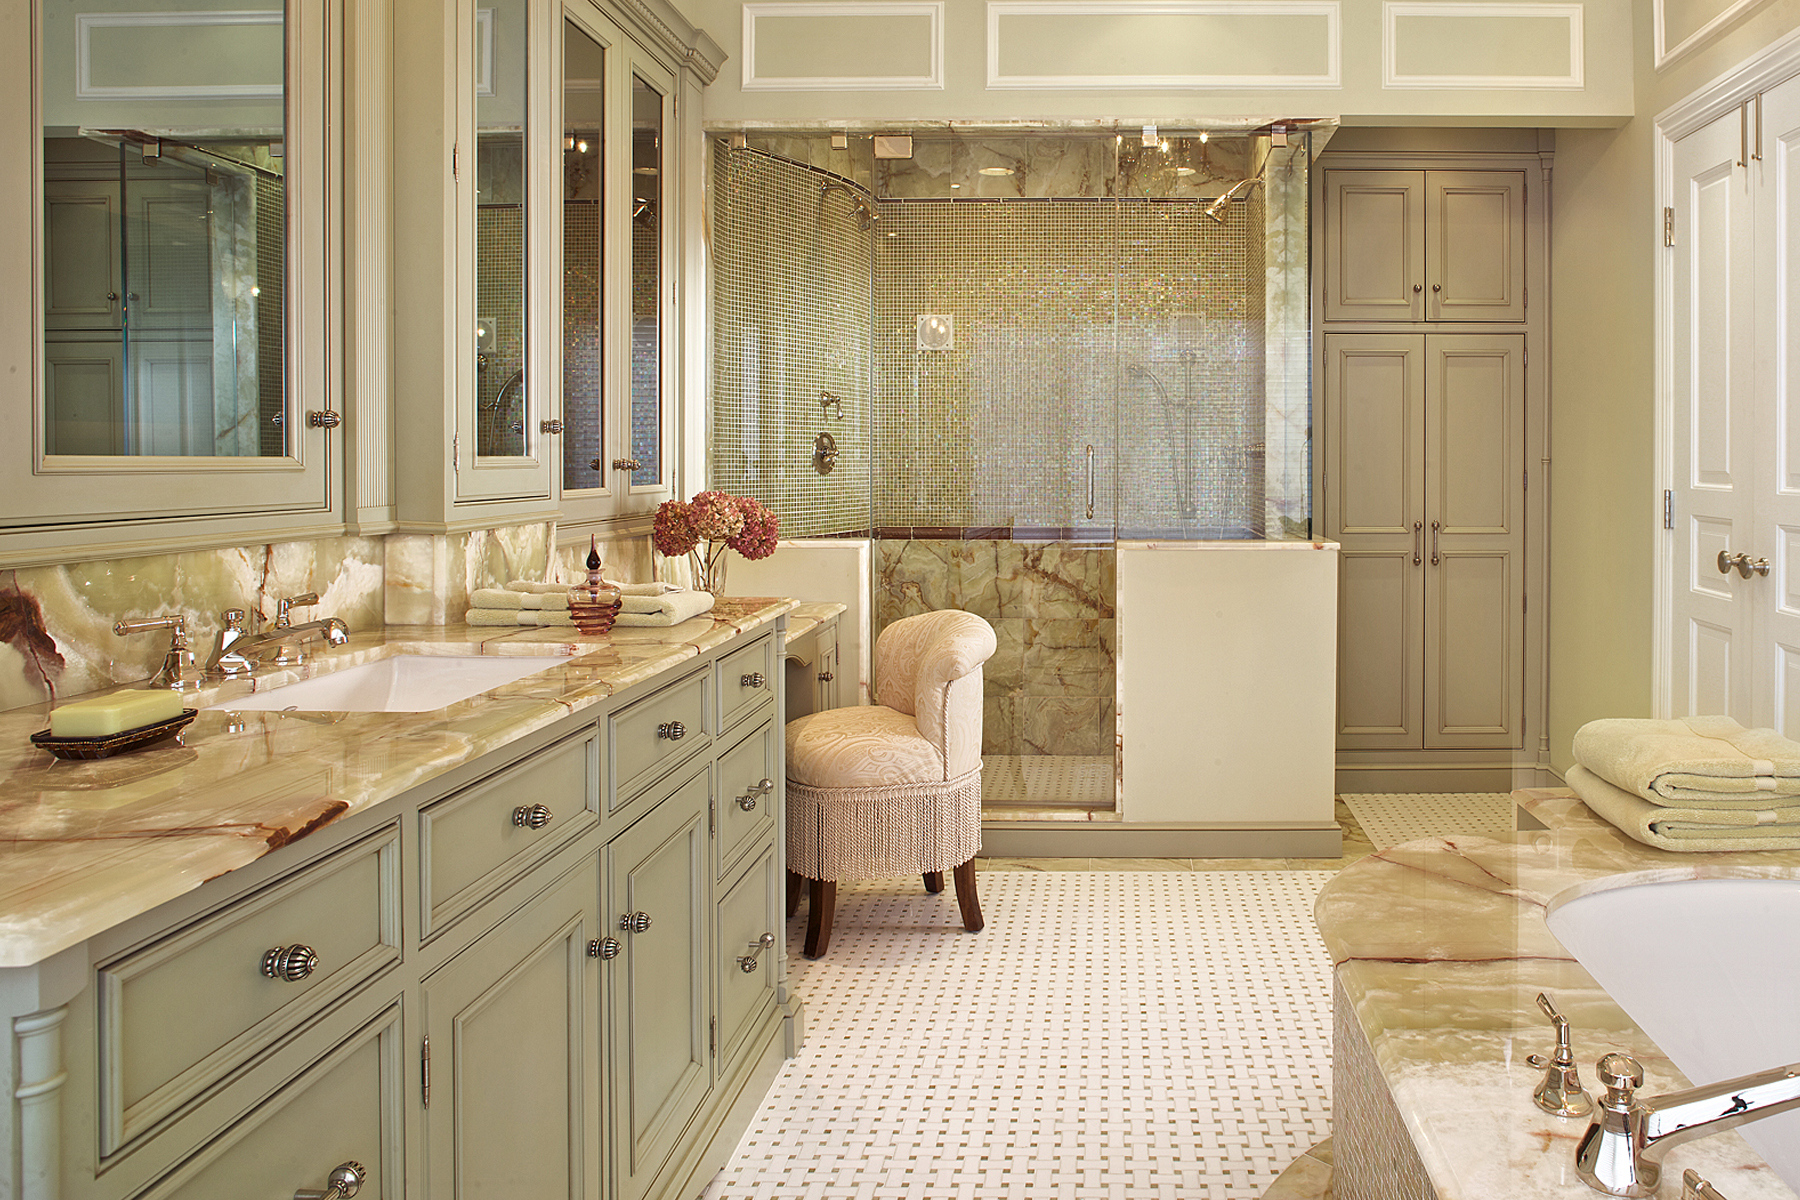 Large master bath features pistachio green painted custom vanity, medicine cabinets and linen closet by Bilotta with inset molding, mirror doors and decorative silver door hardware, light green marble countertops with brown veining, and an oversized double shower with marble up to the chair rail and small pistachio green, gold and brown tiles above the chair rail. Design by Regina Bilotta of Bilotta Kitchens.